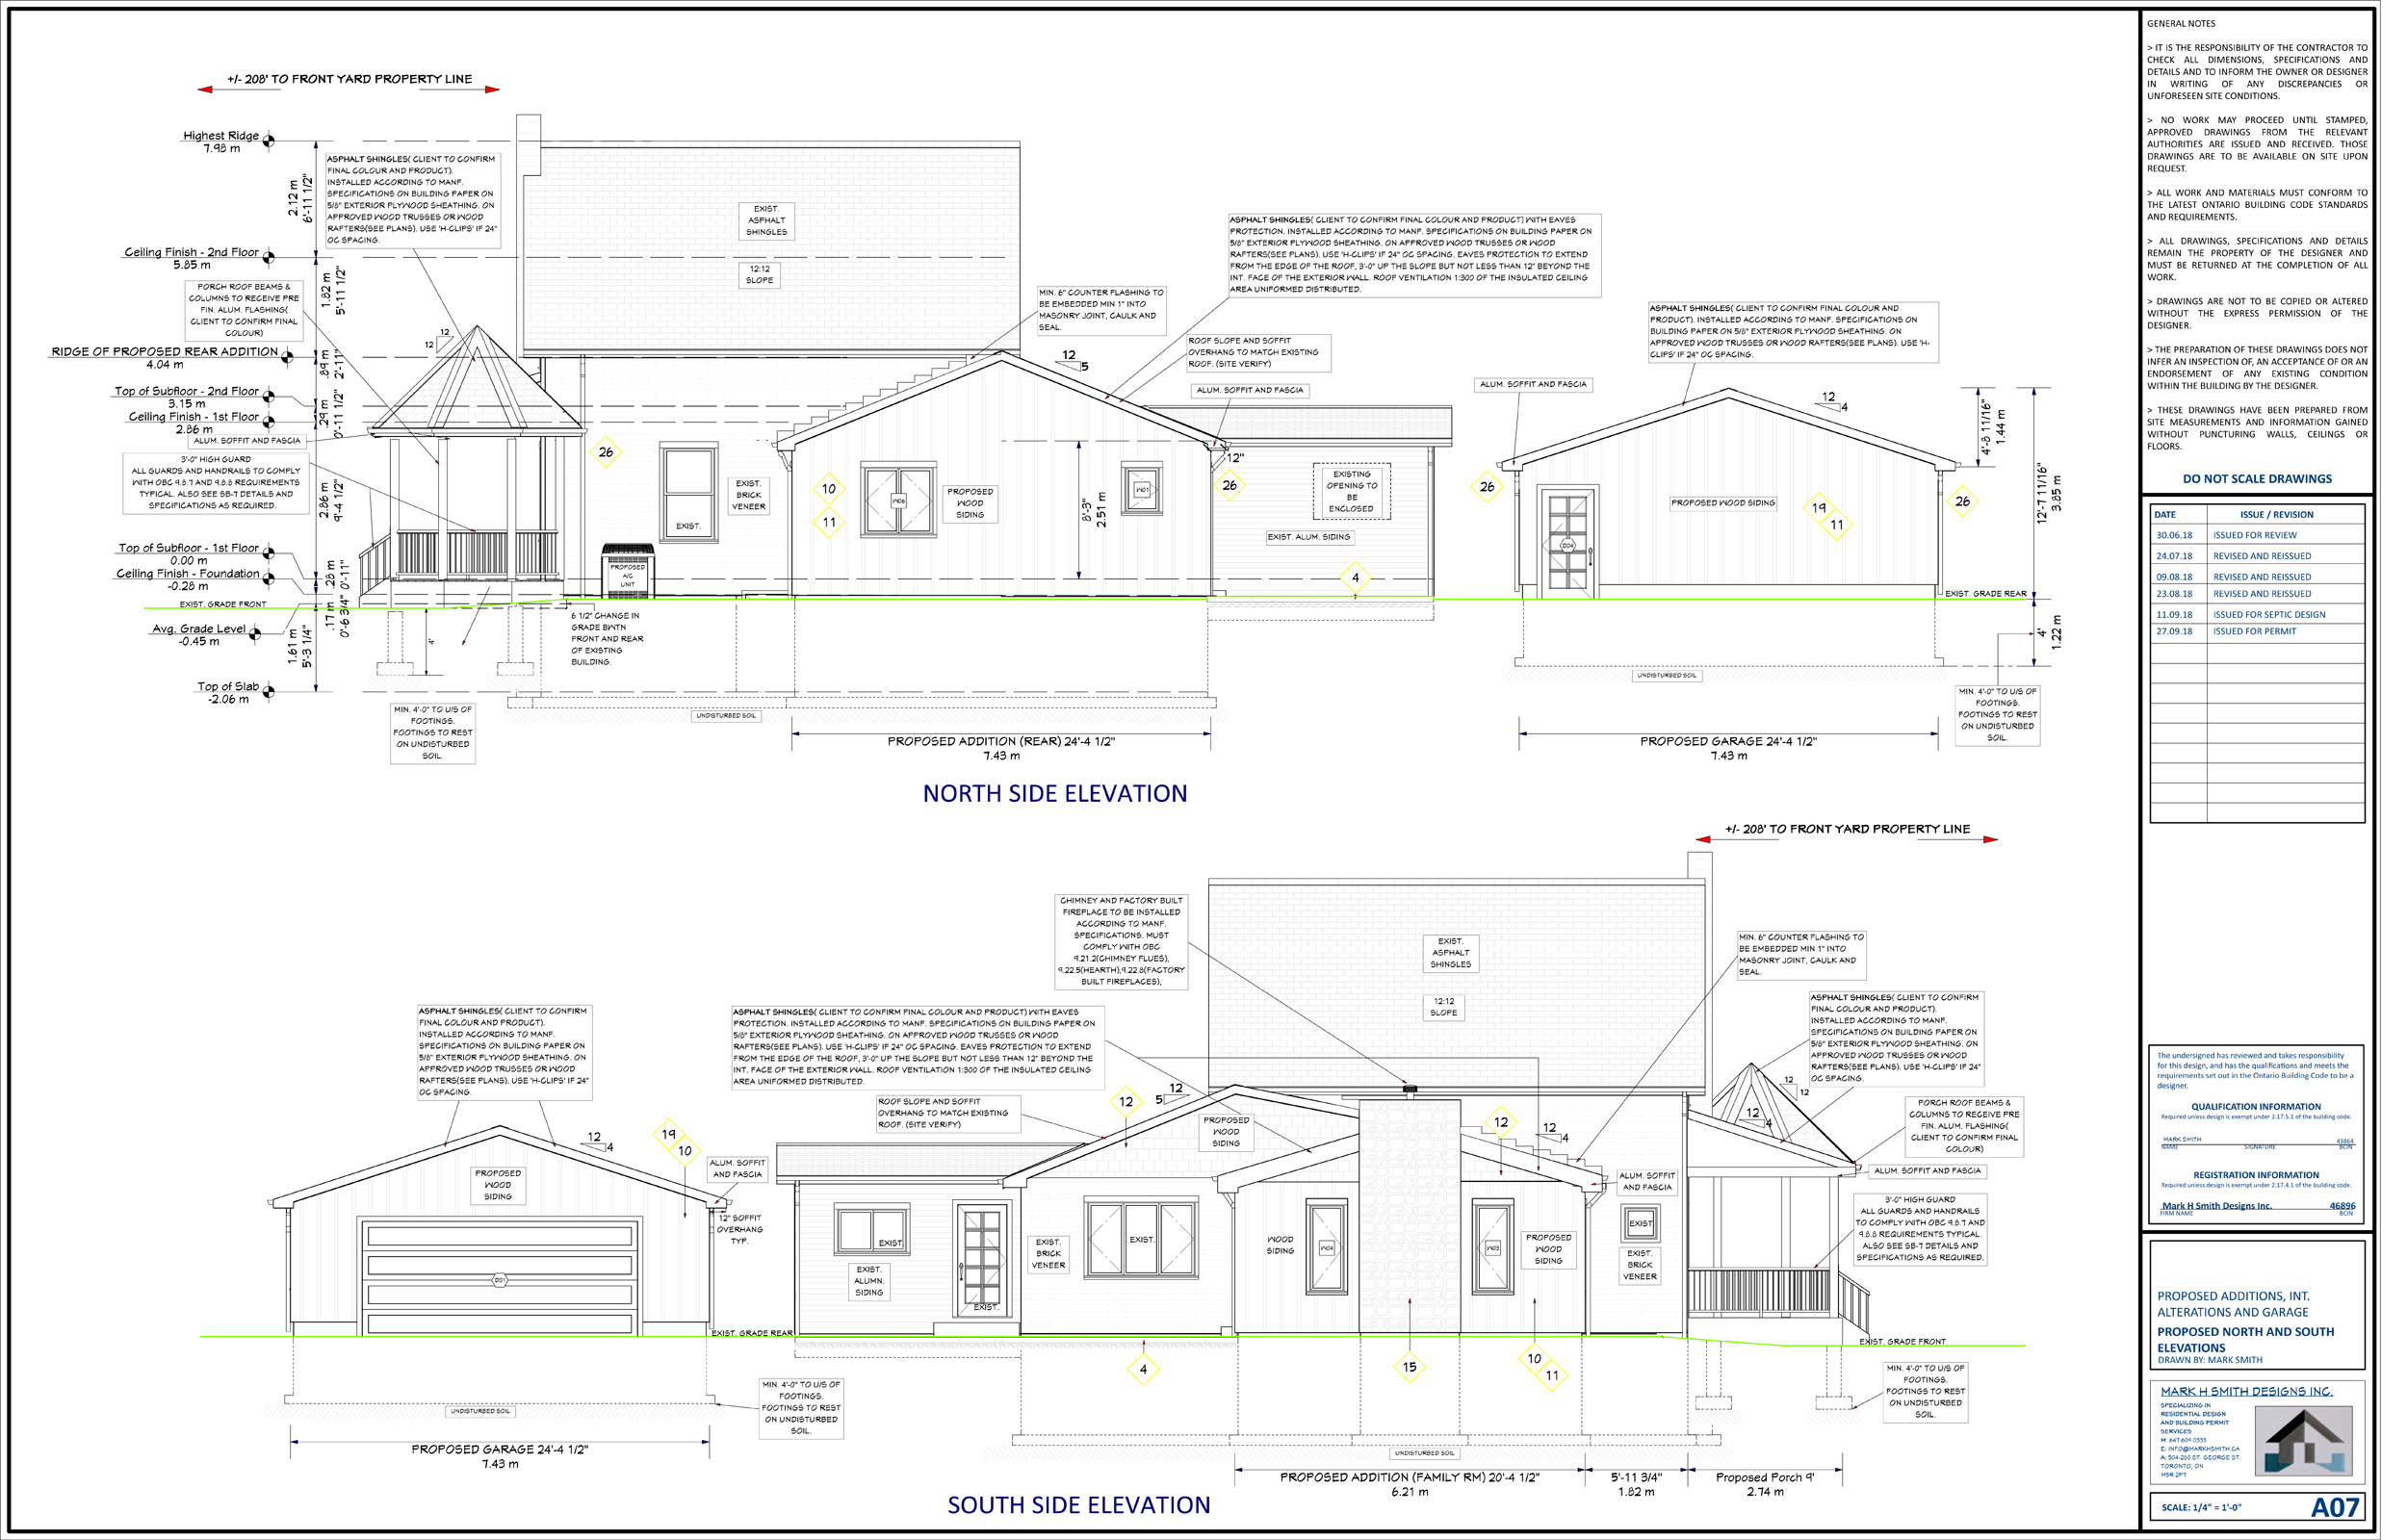 Building permit- Additions and Interior alterations